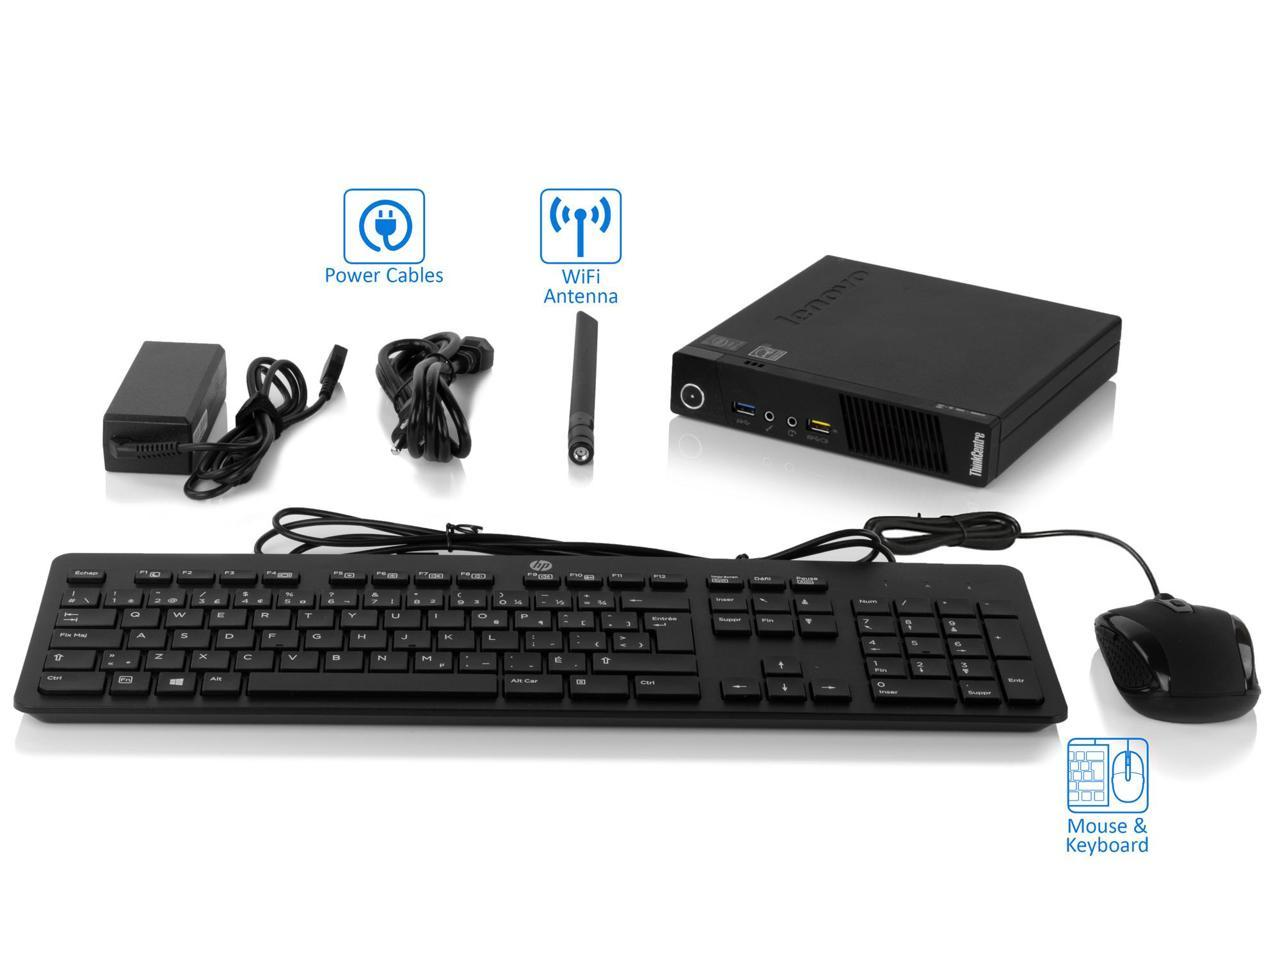 میکرو کیس lenovo thinkcenter M93p tiny desktop